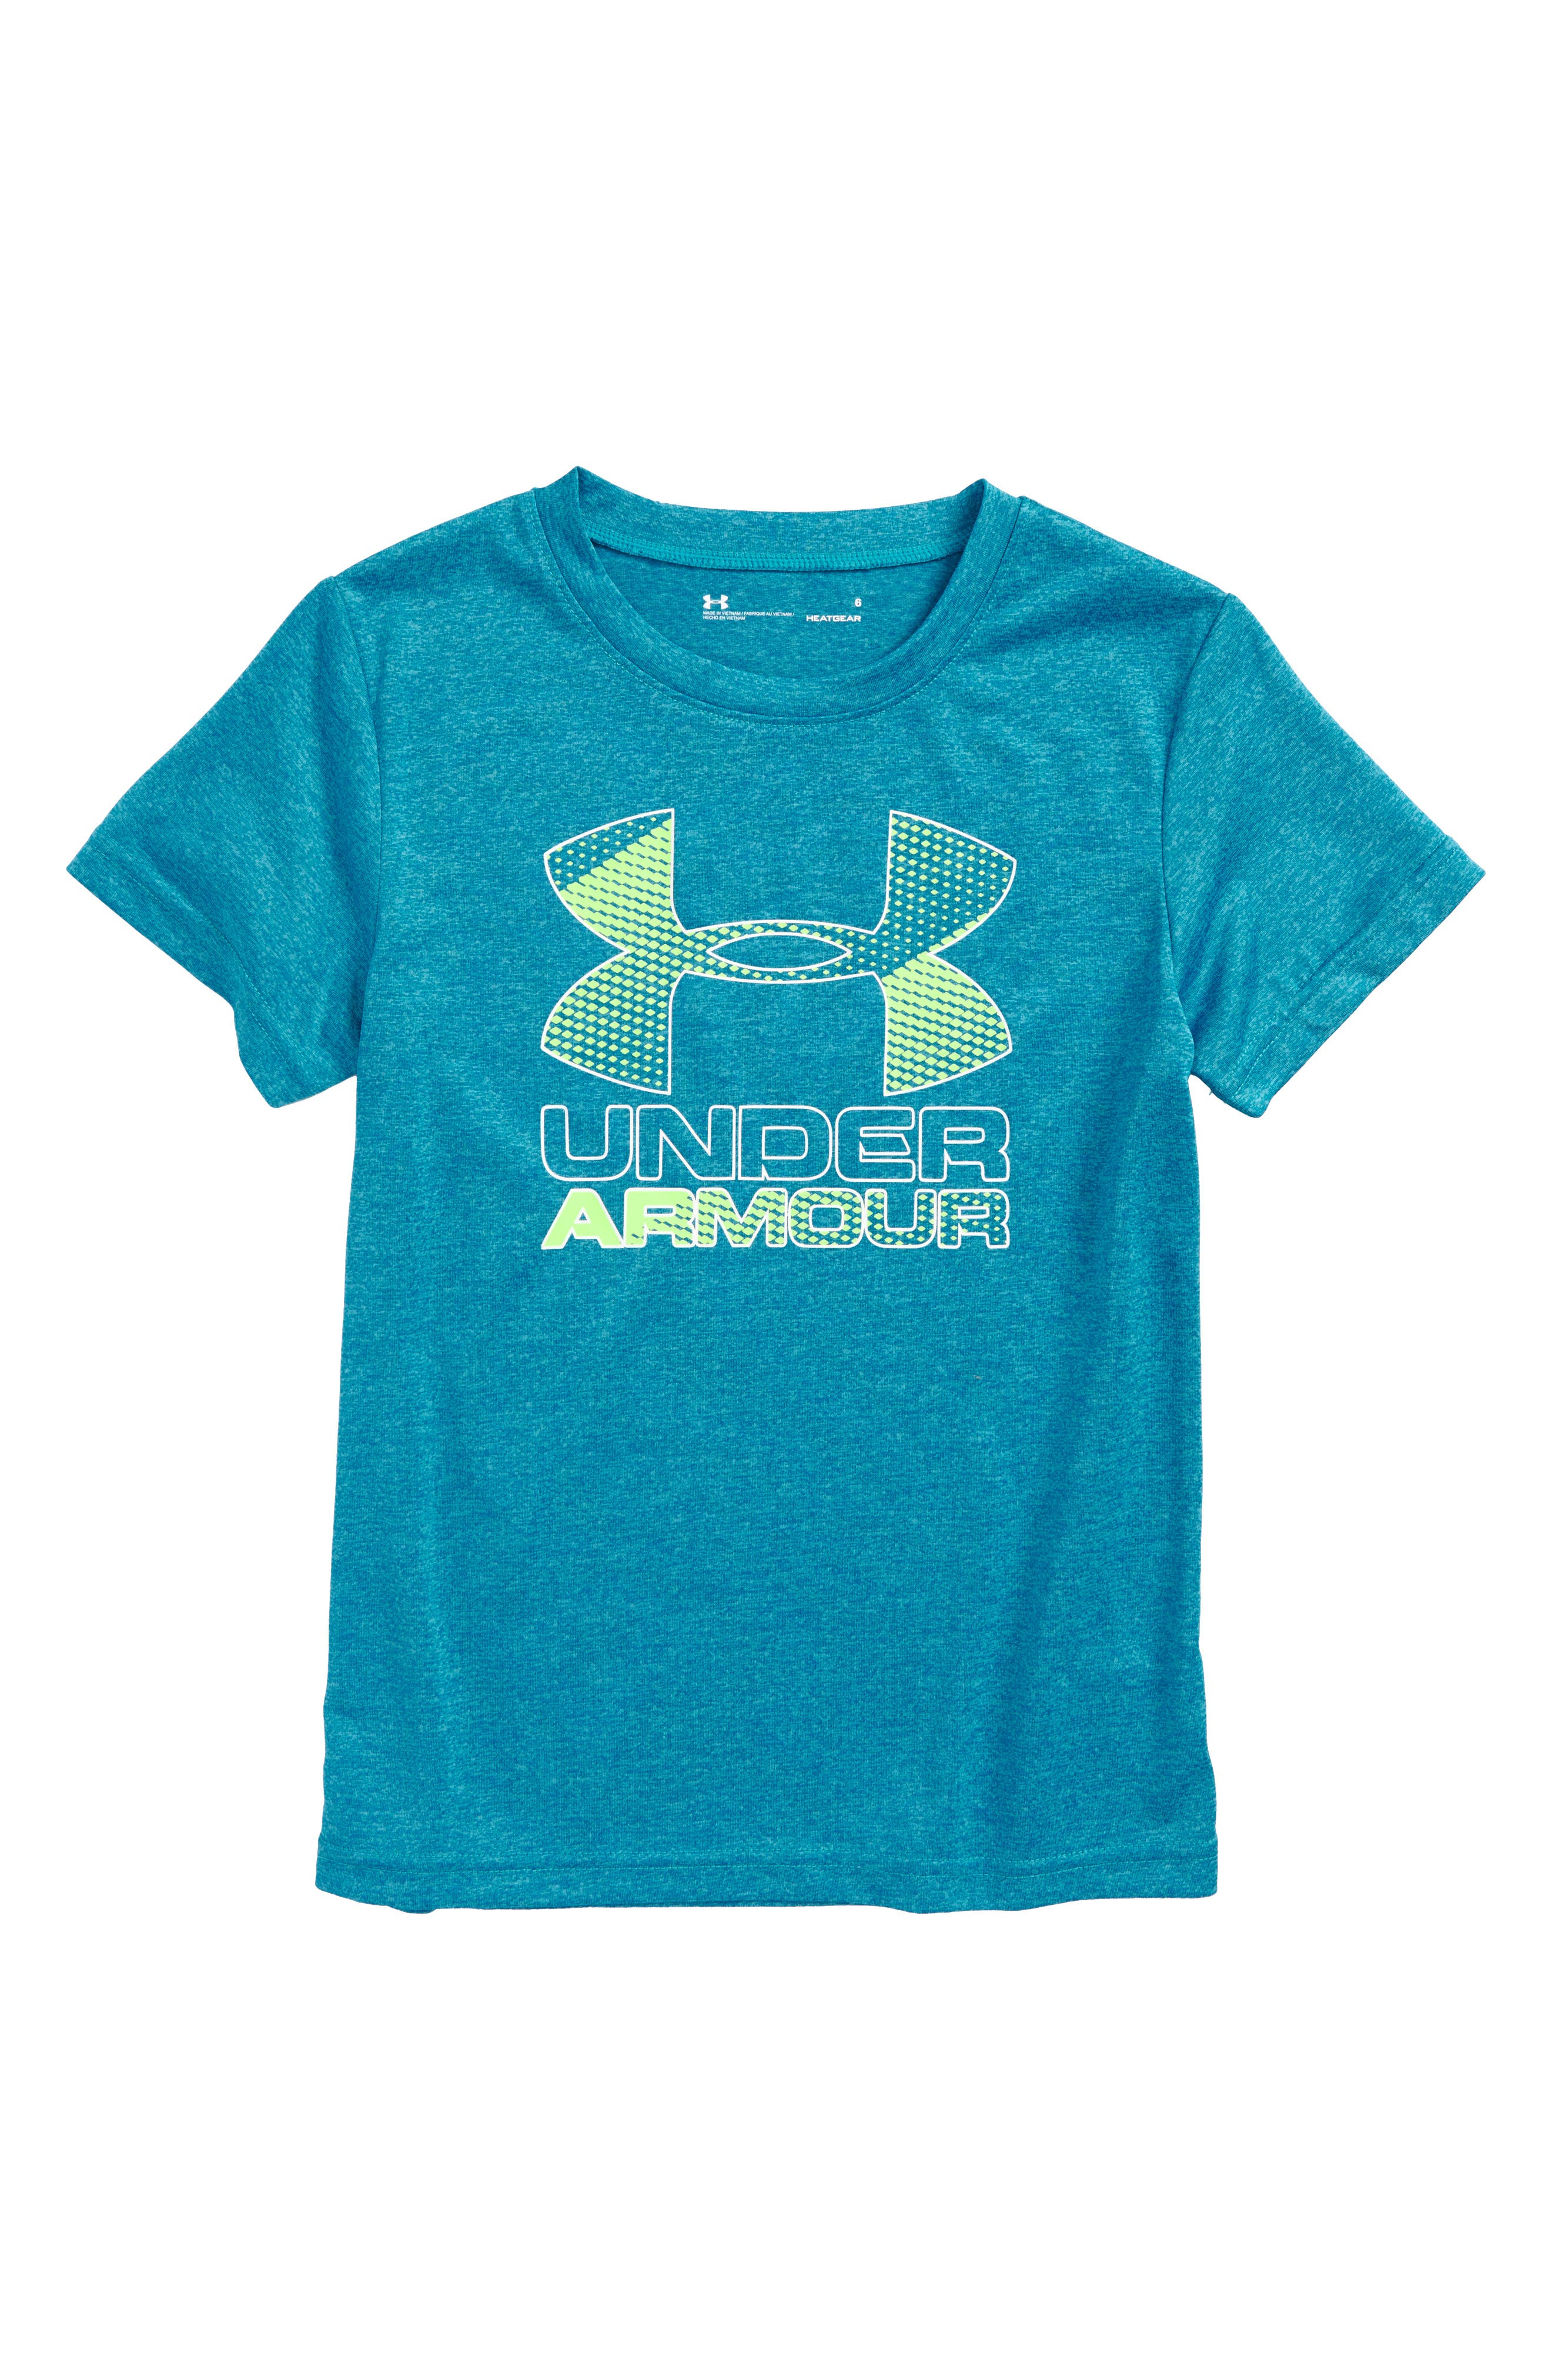 Main Image - Under Armour Big Logo Hybrid 2.0 HeatGear® T-Shirt (Toddler Boys & Little Boys)